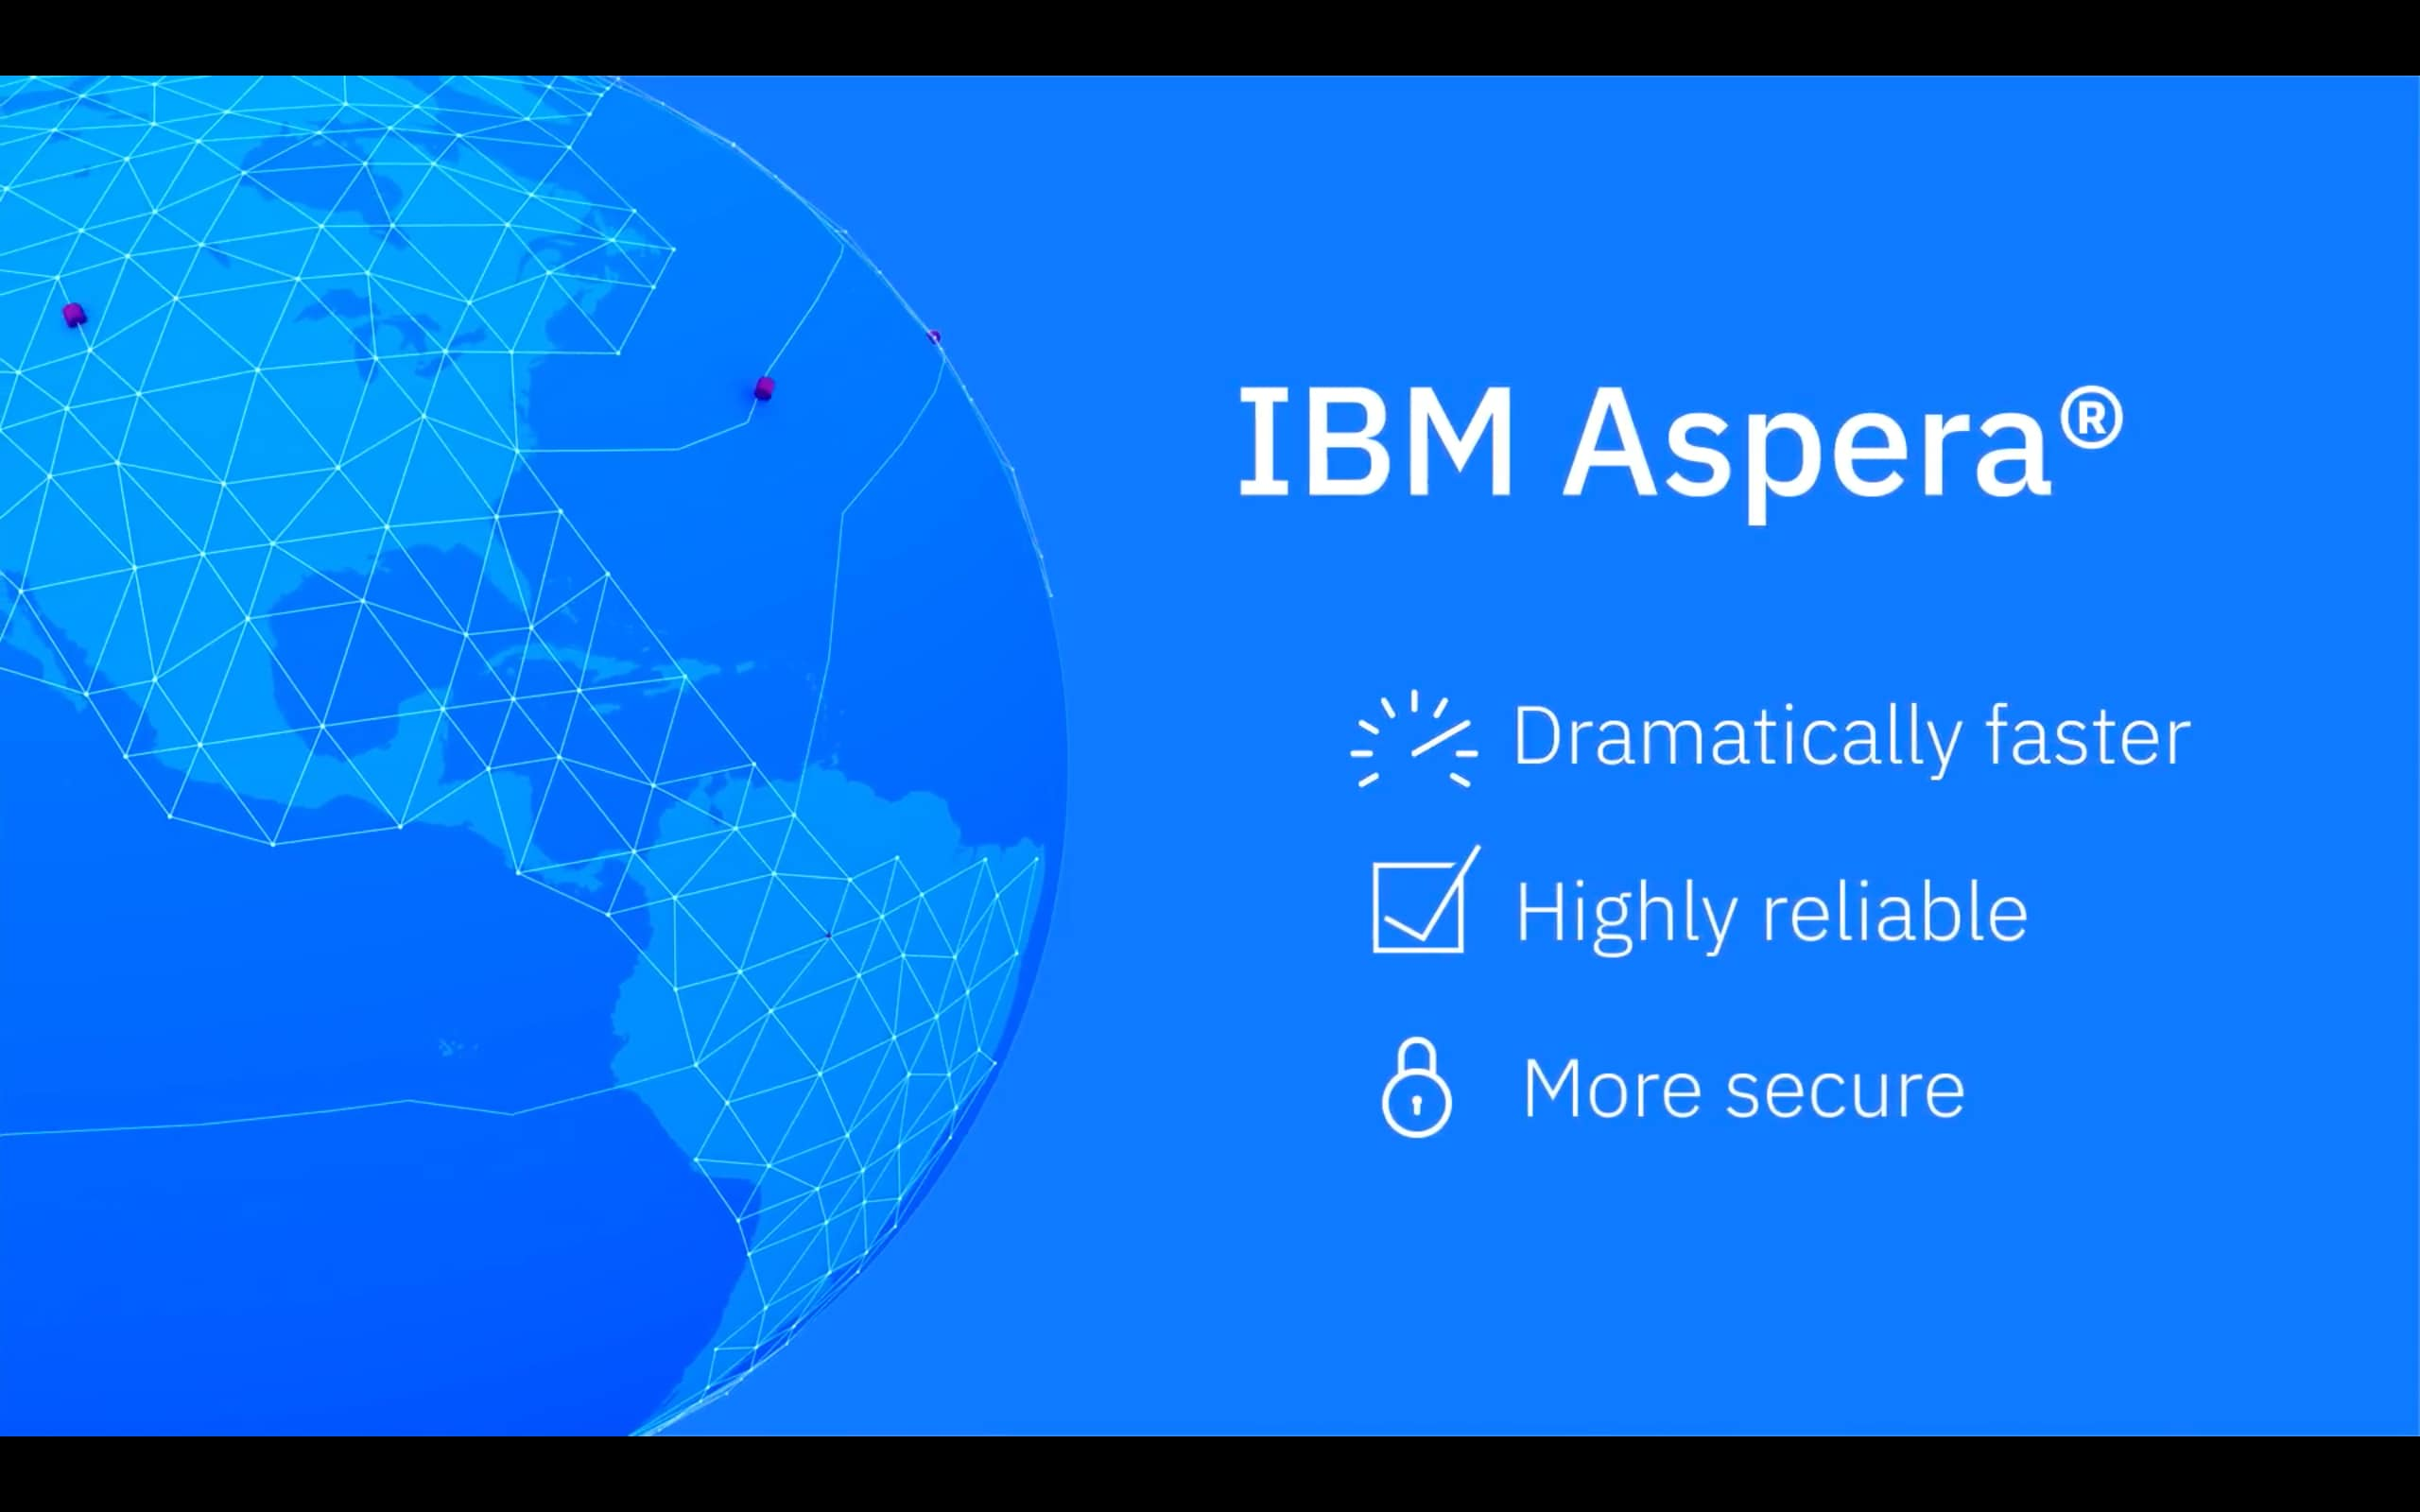 Vídeo de IBM Aspera